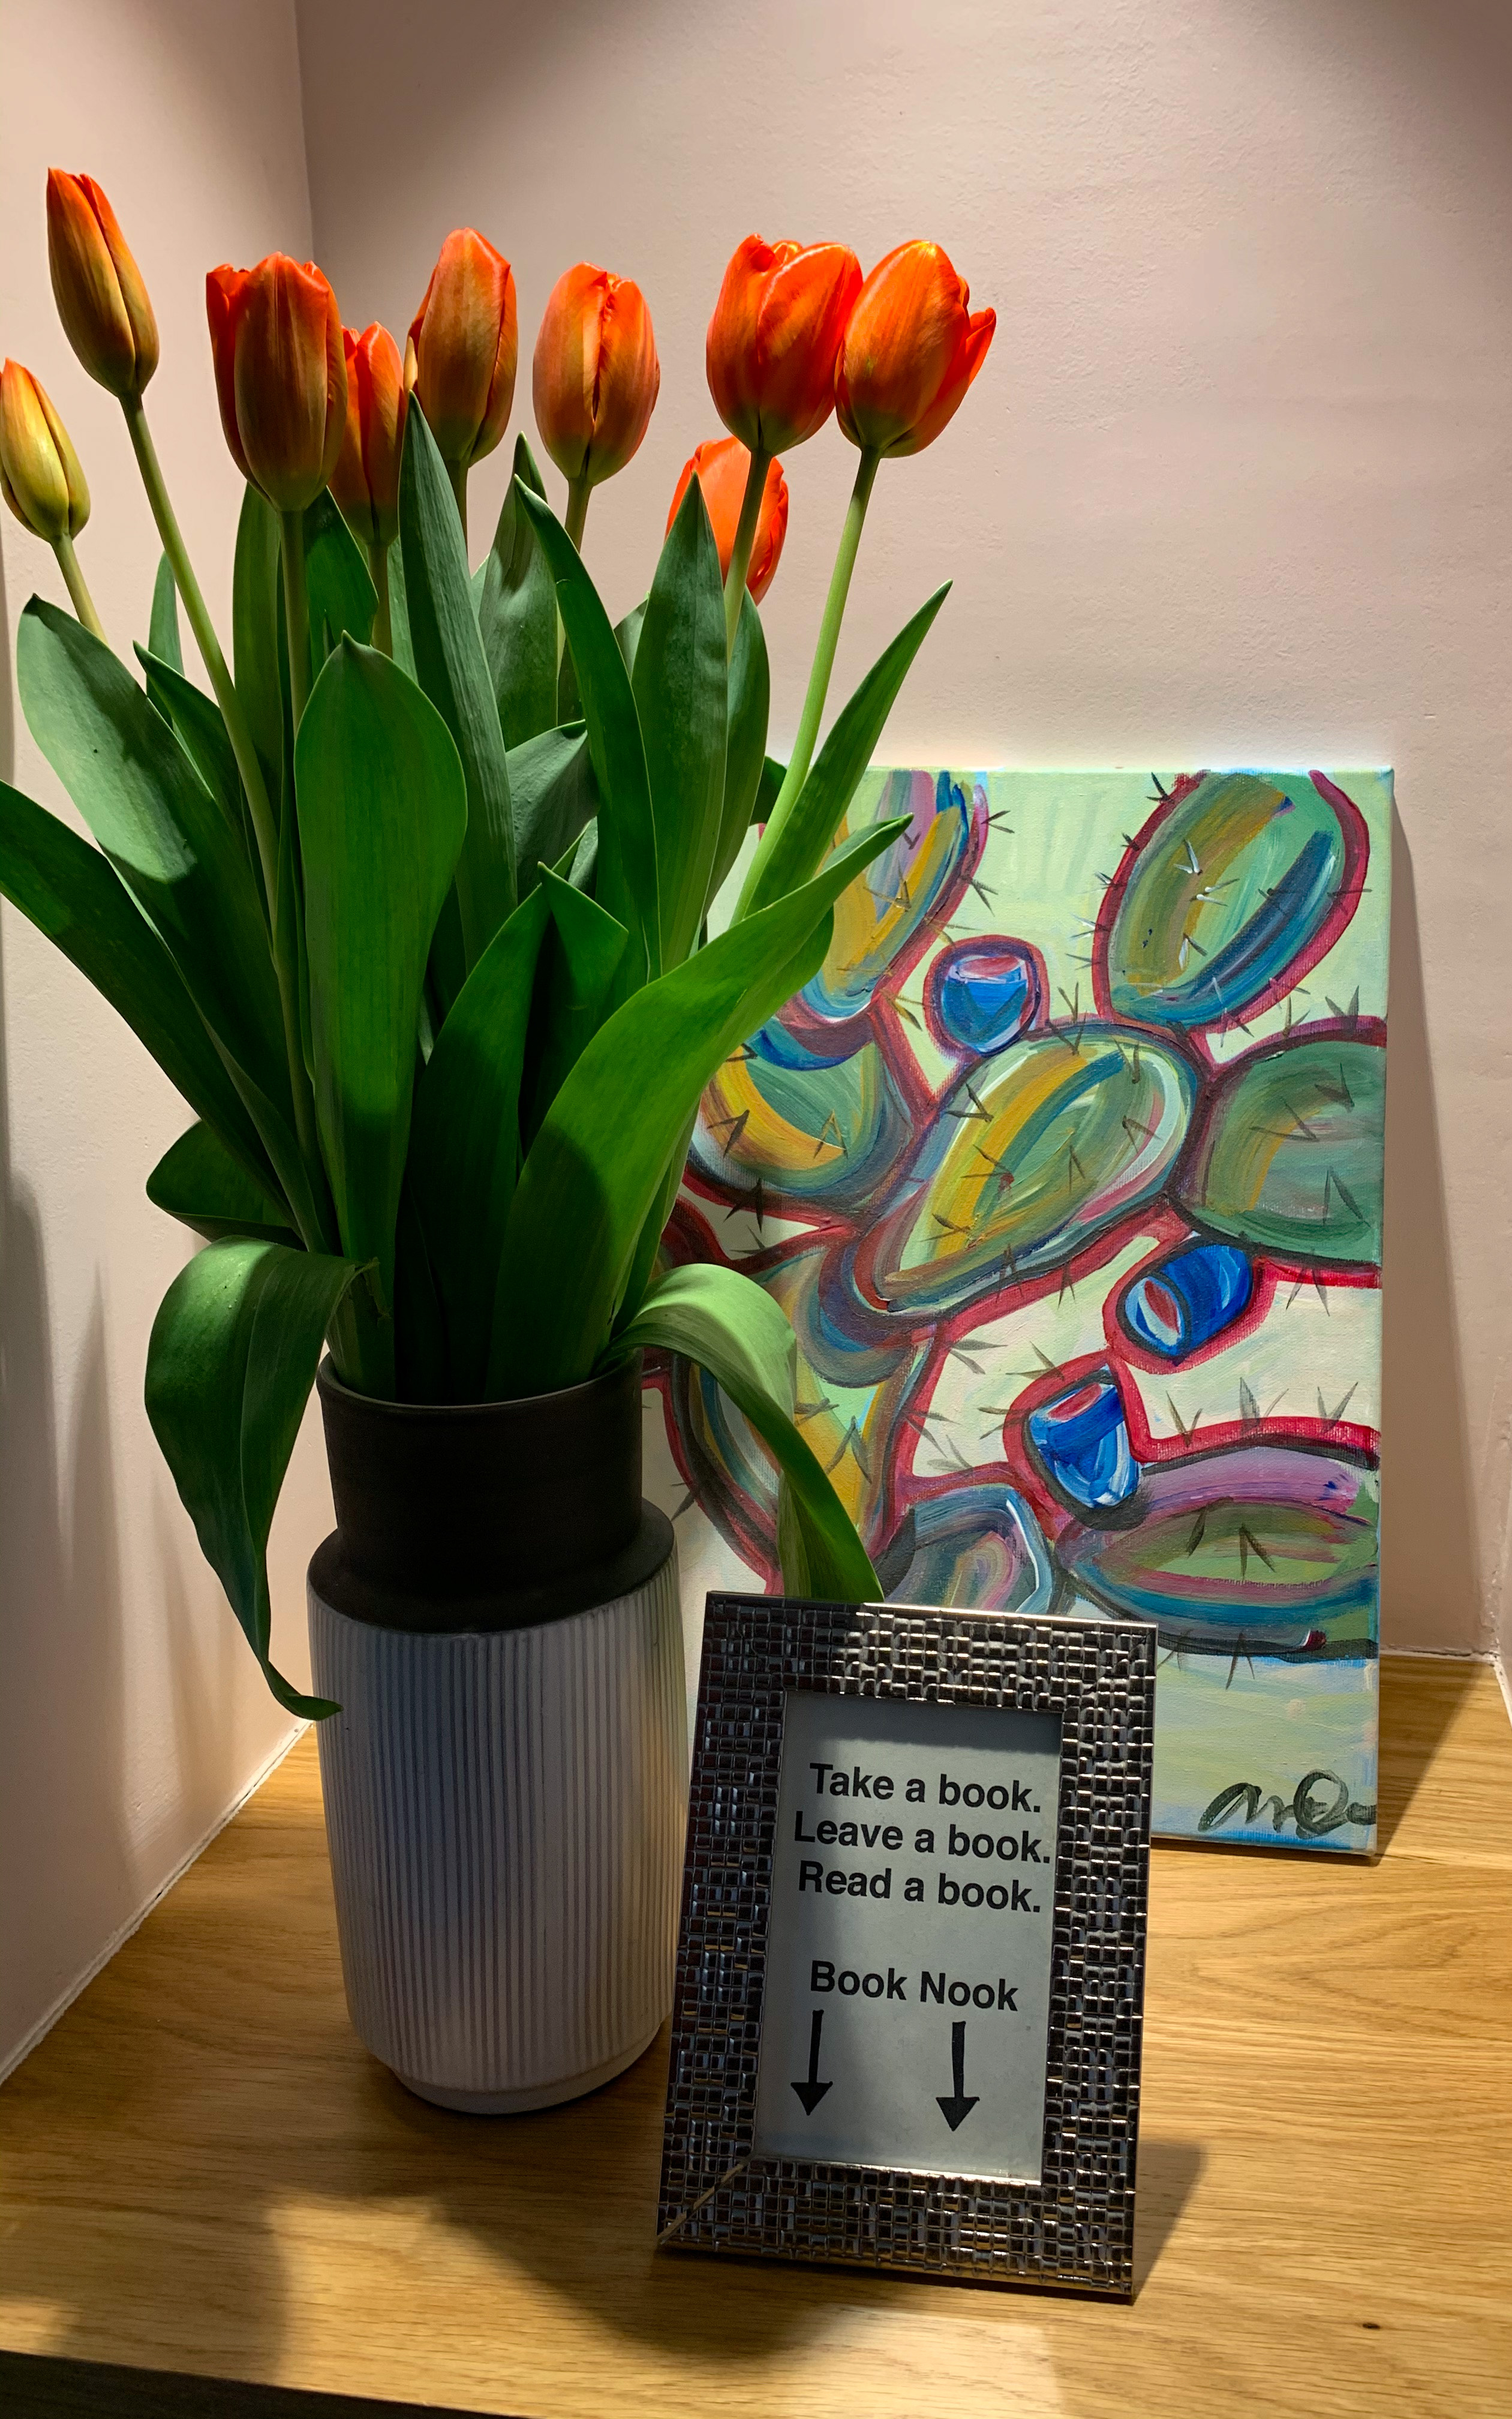 """To the left on a shelf, a white vase of orange and yellow hybrid tulips. In front of the flowers is a small framed sign that reads """"take a book, leave a book, read a book"""" with a down arrow gesturing to the book nook below."""